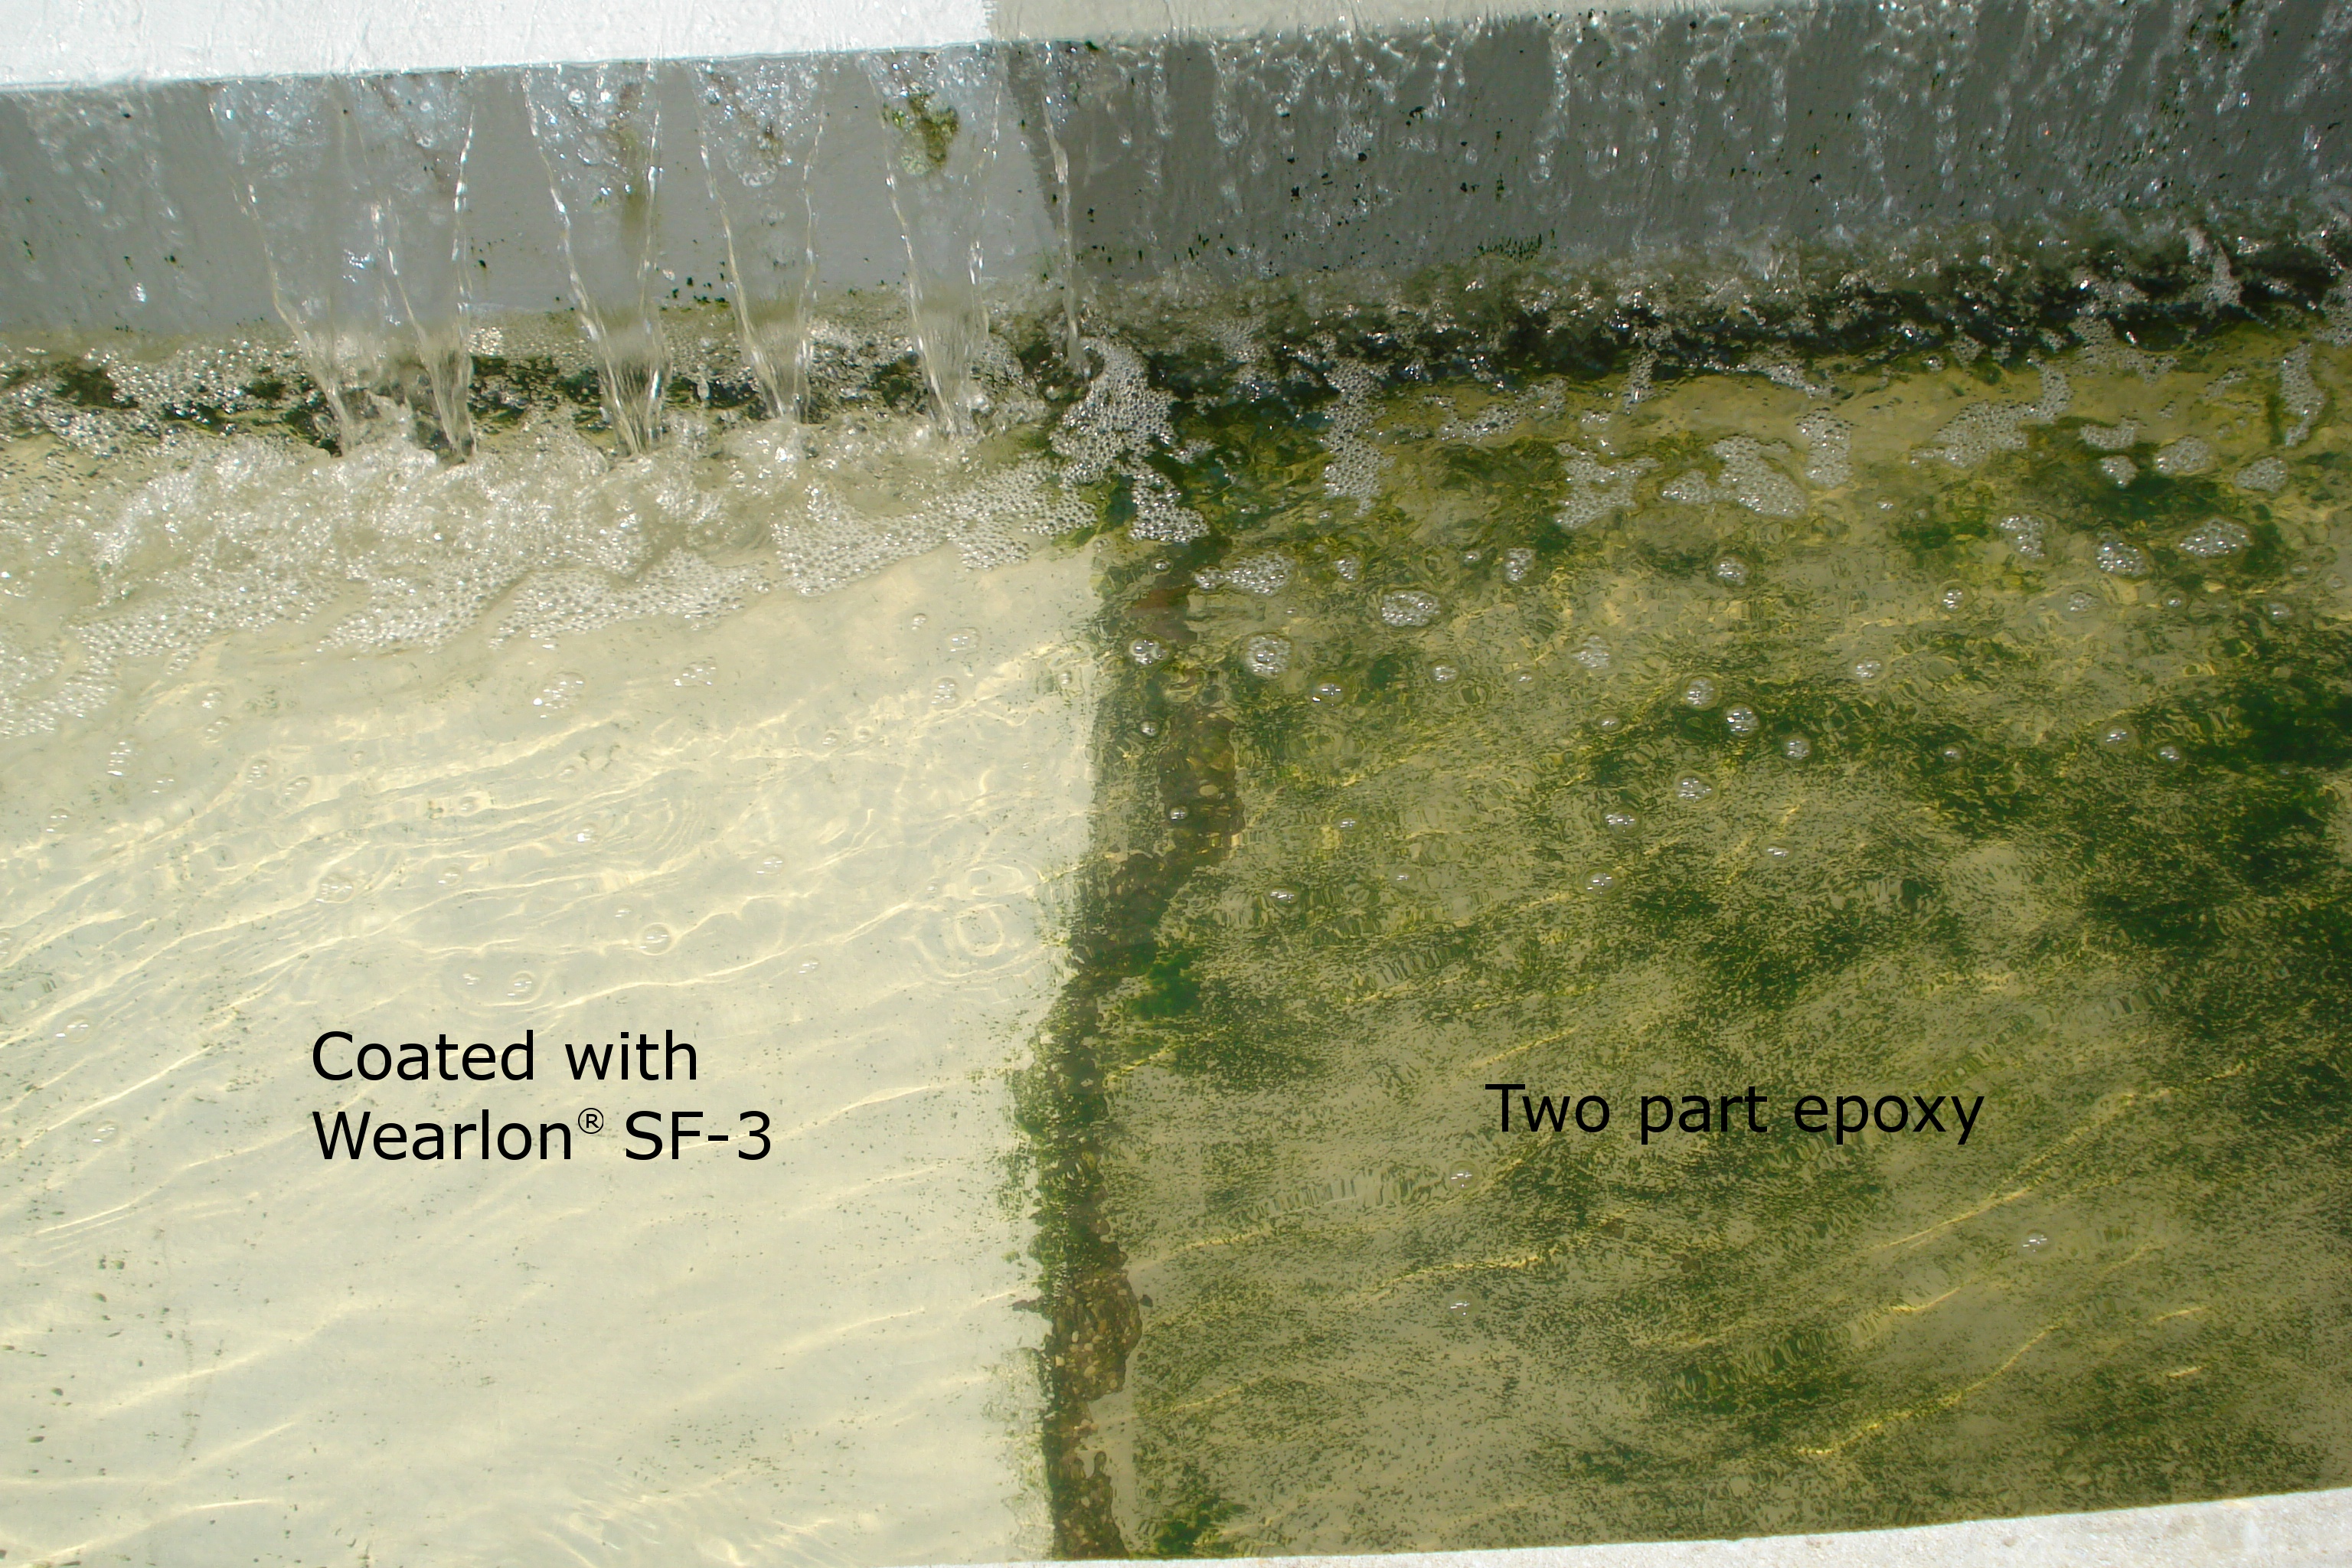 Wearlon coated concrete resisting algae, slime and fouling